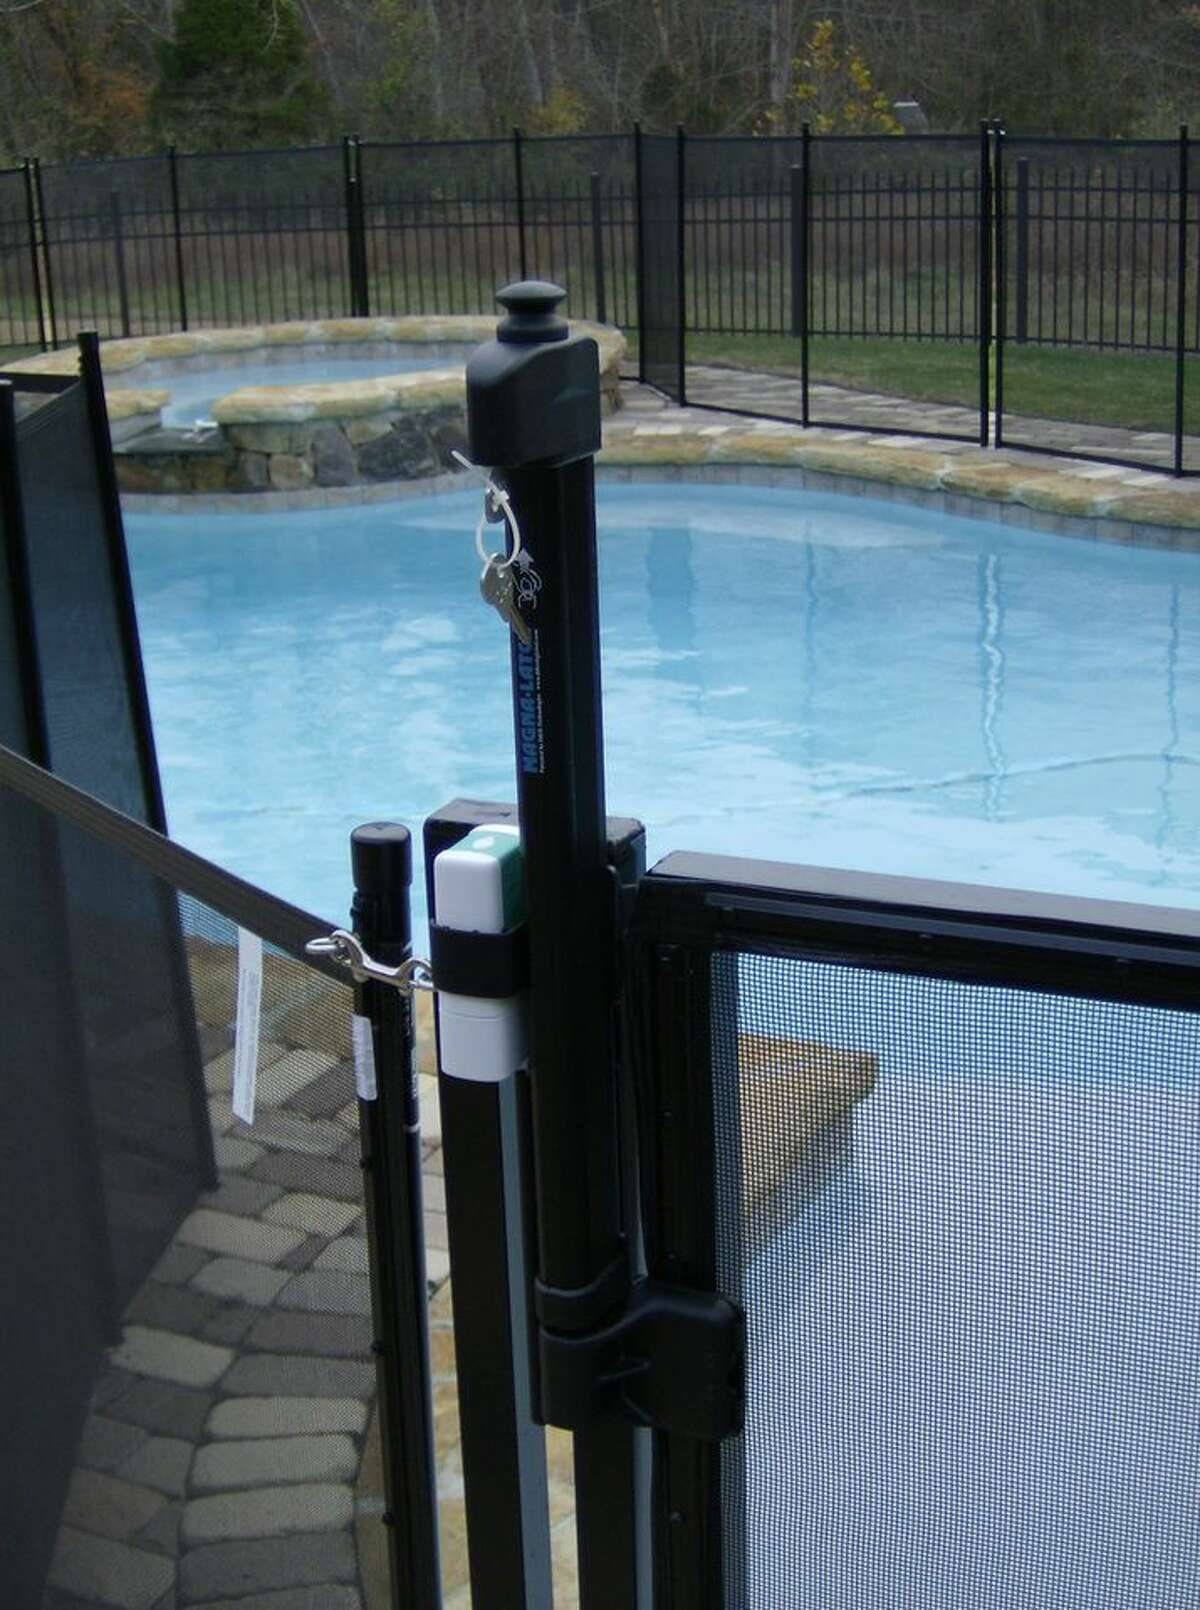 An alarm on the swimming-pool gate will sound in the house when the gate is opened.